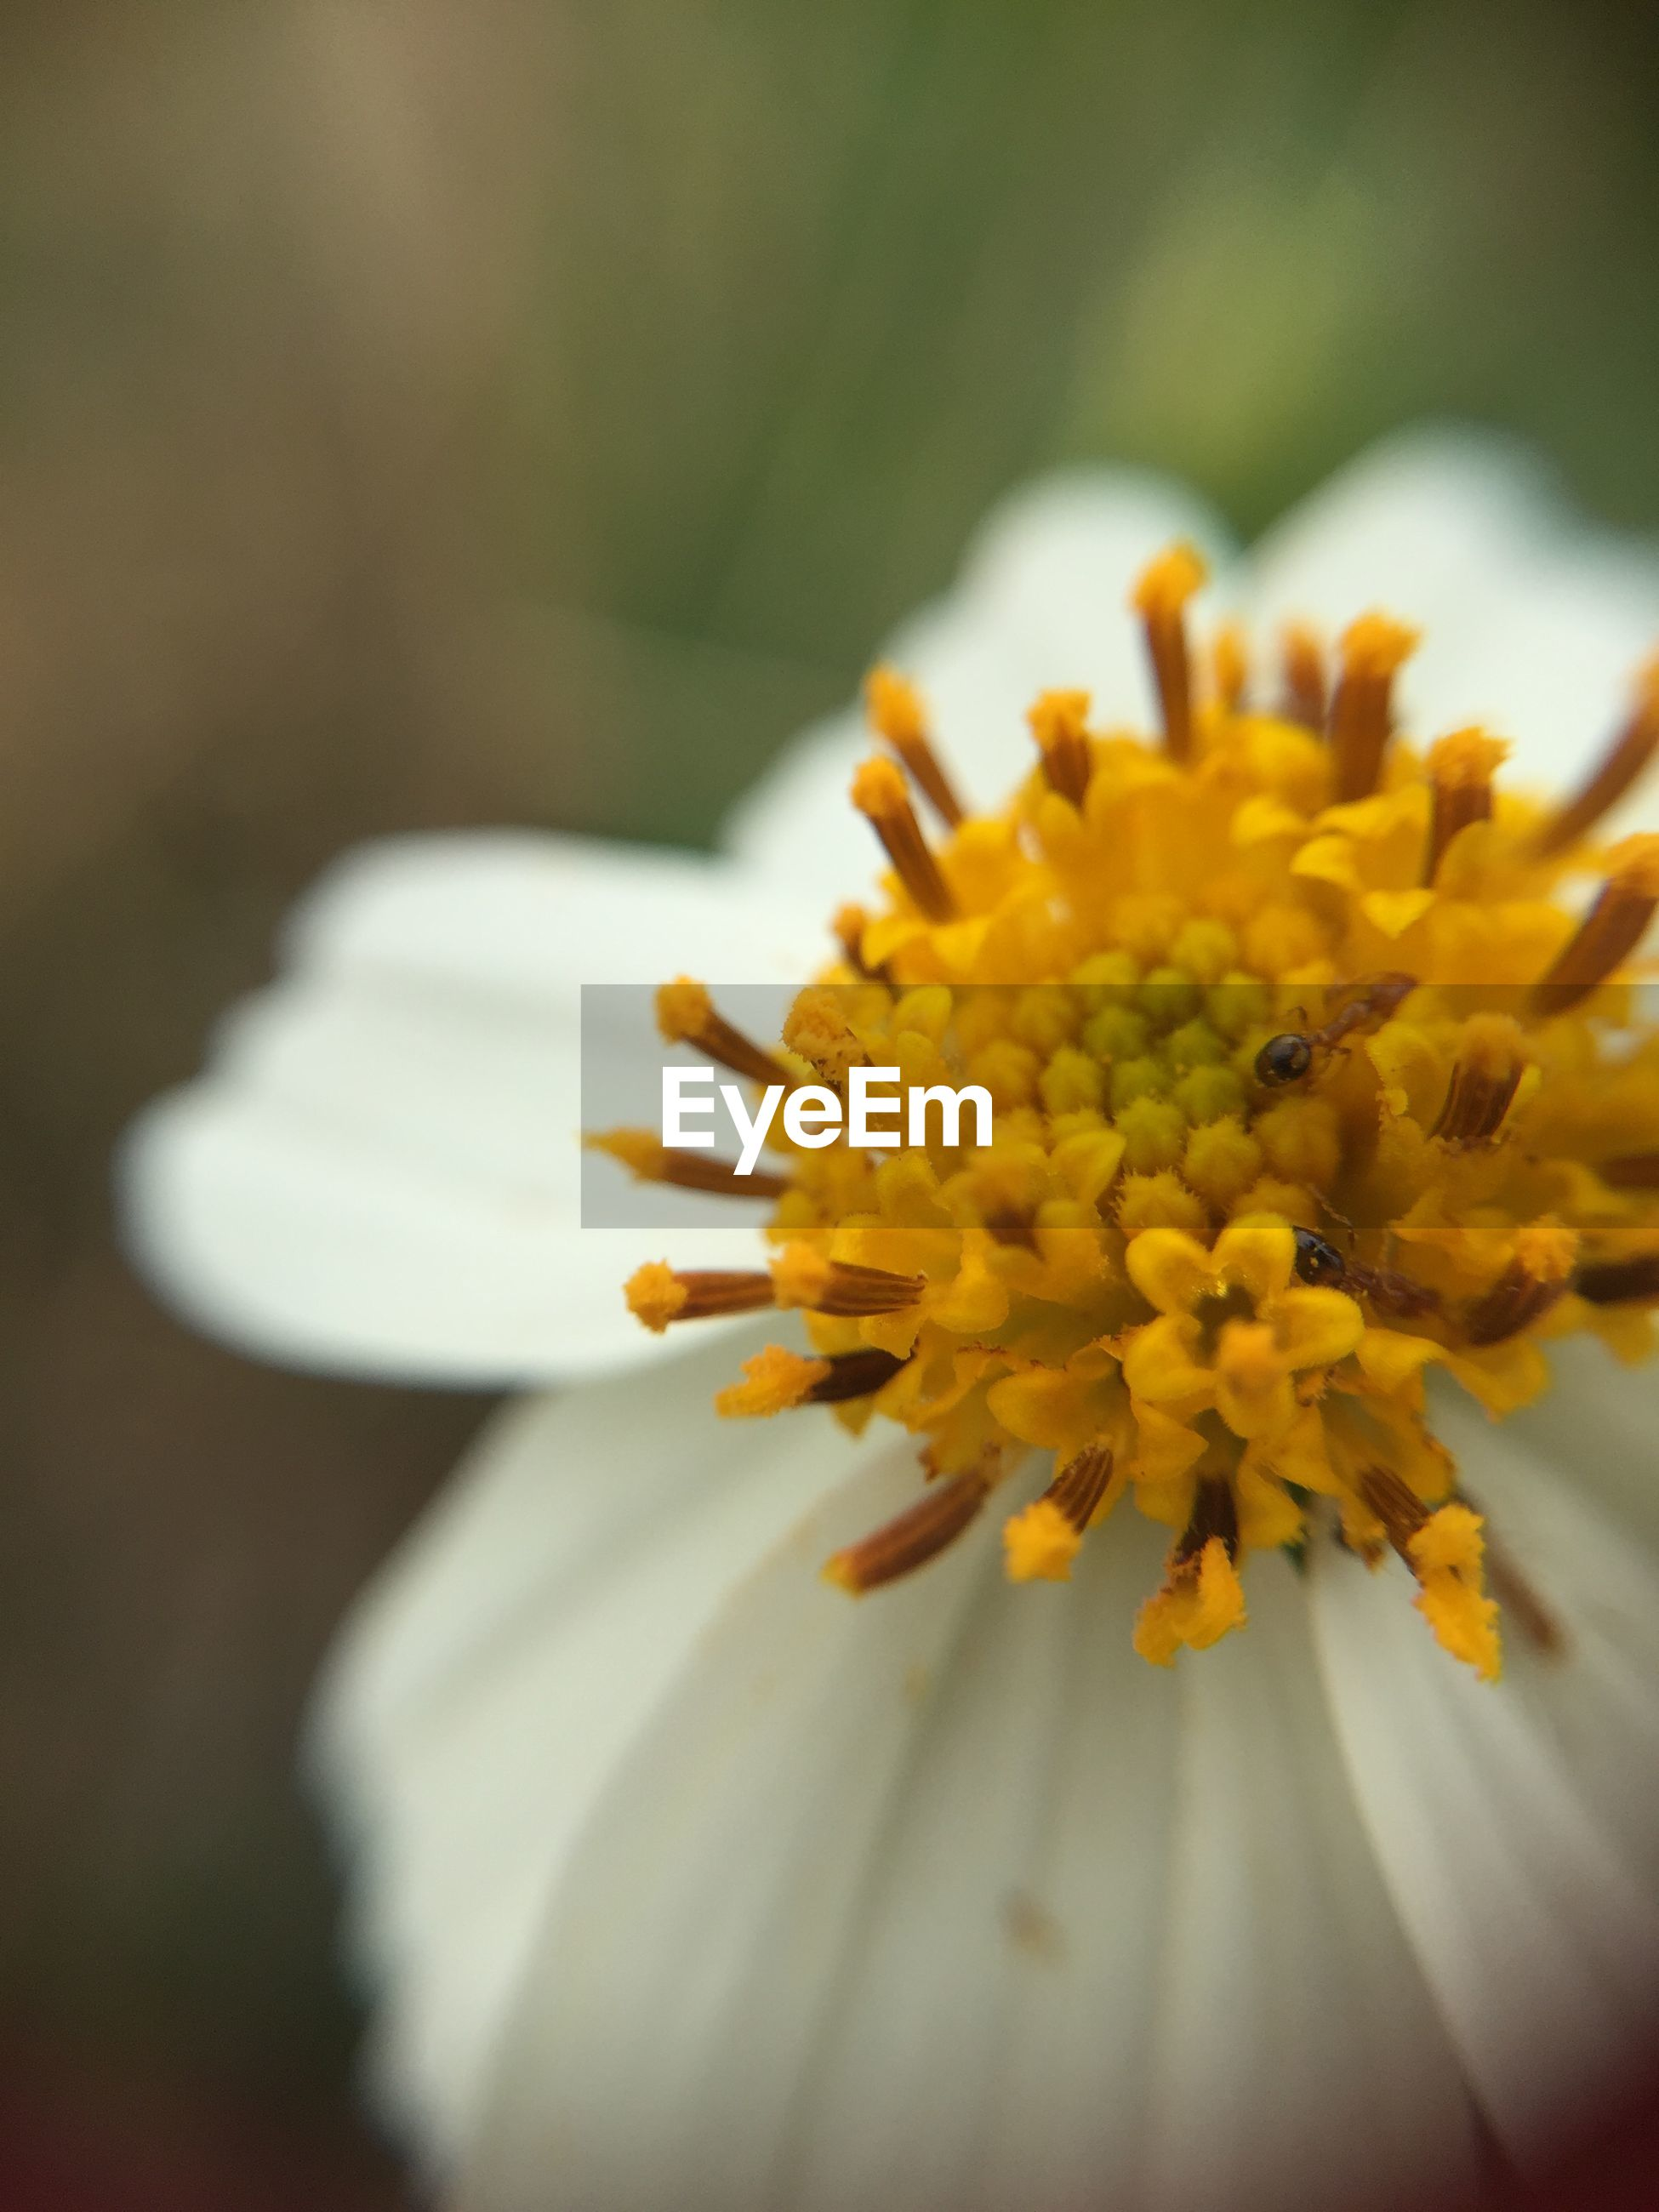 flower, petal, flower head, freshness, fragility, close-up, pollen, beauty in nature, yellow, single flower, selective focus, nature, growth, blooming, daisy, focus on foreground, stamen, white color, in bloom, macro